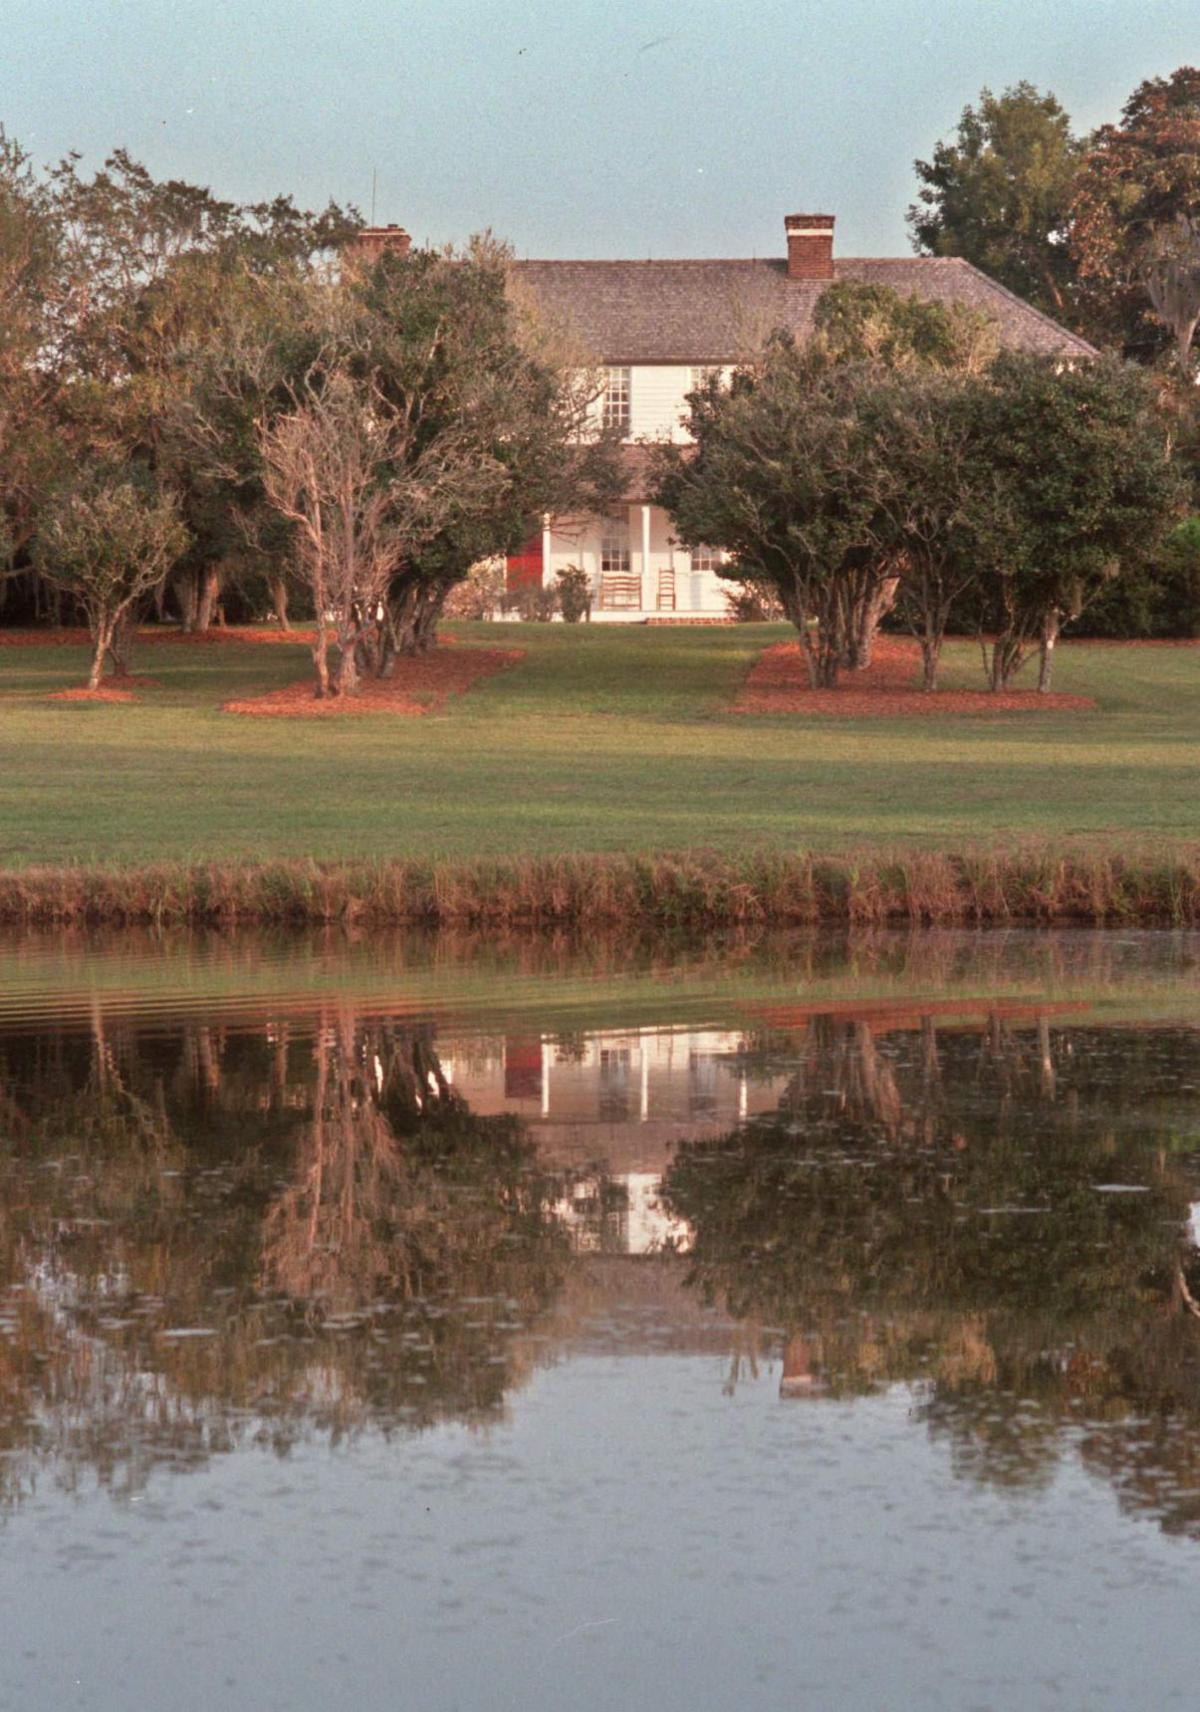 Longtime owners sell Middleburg Plantation